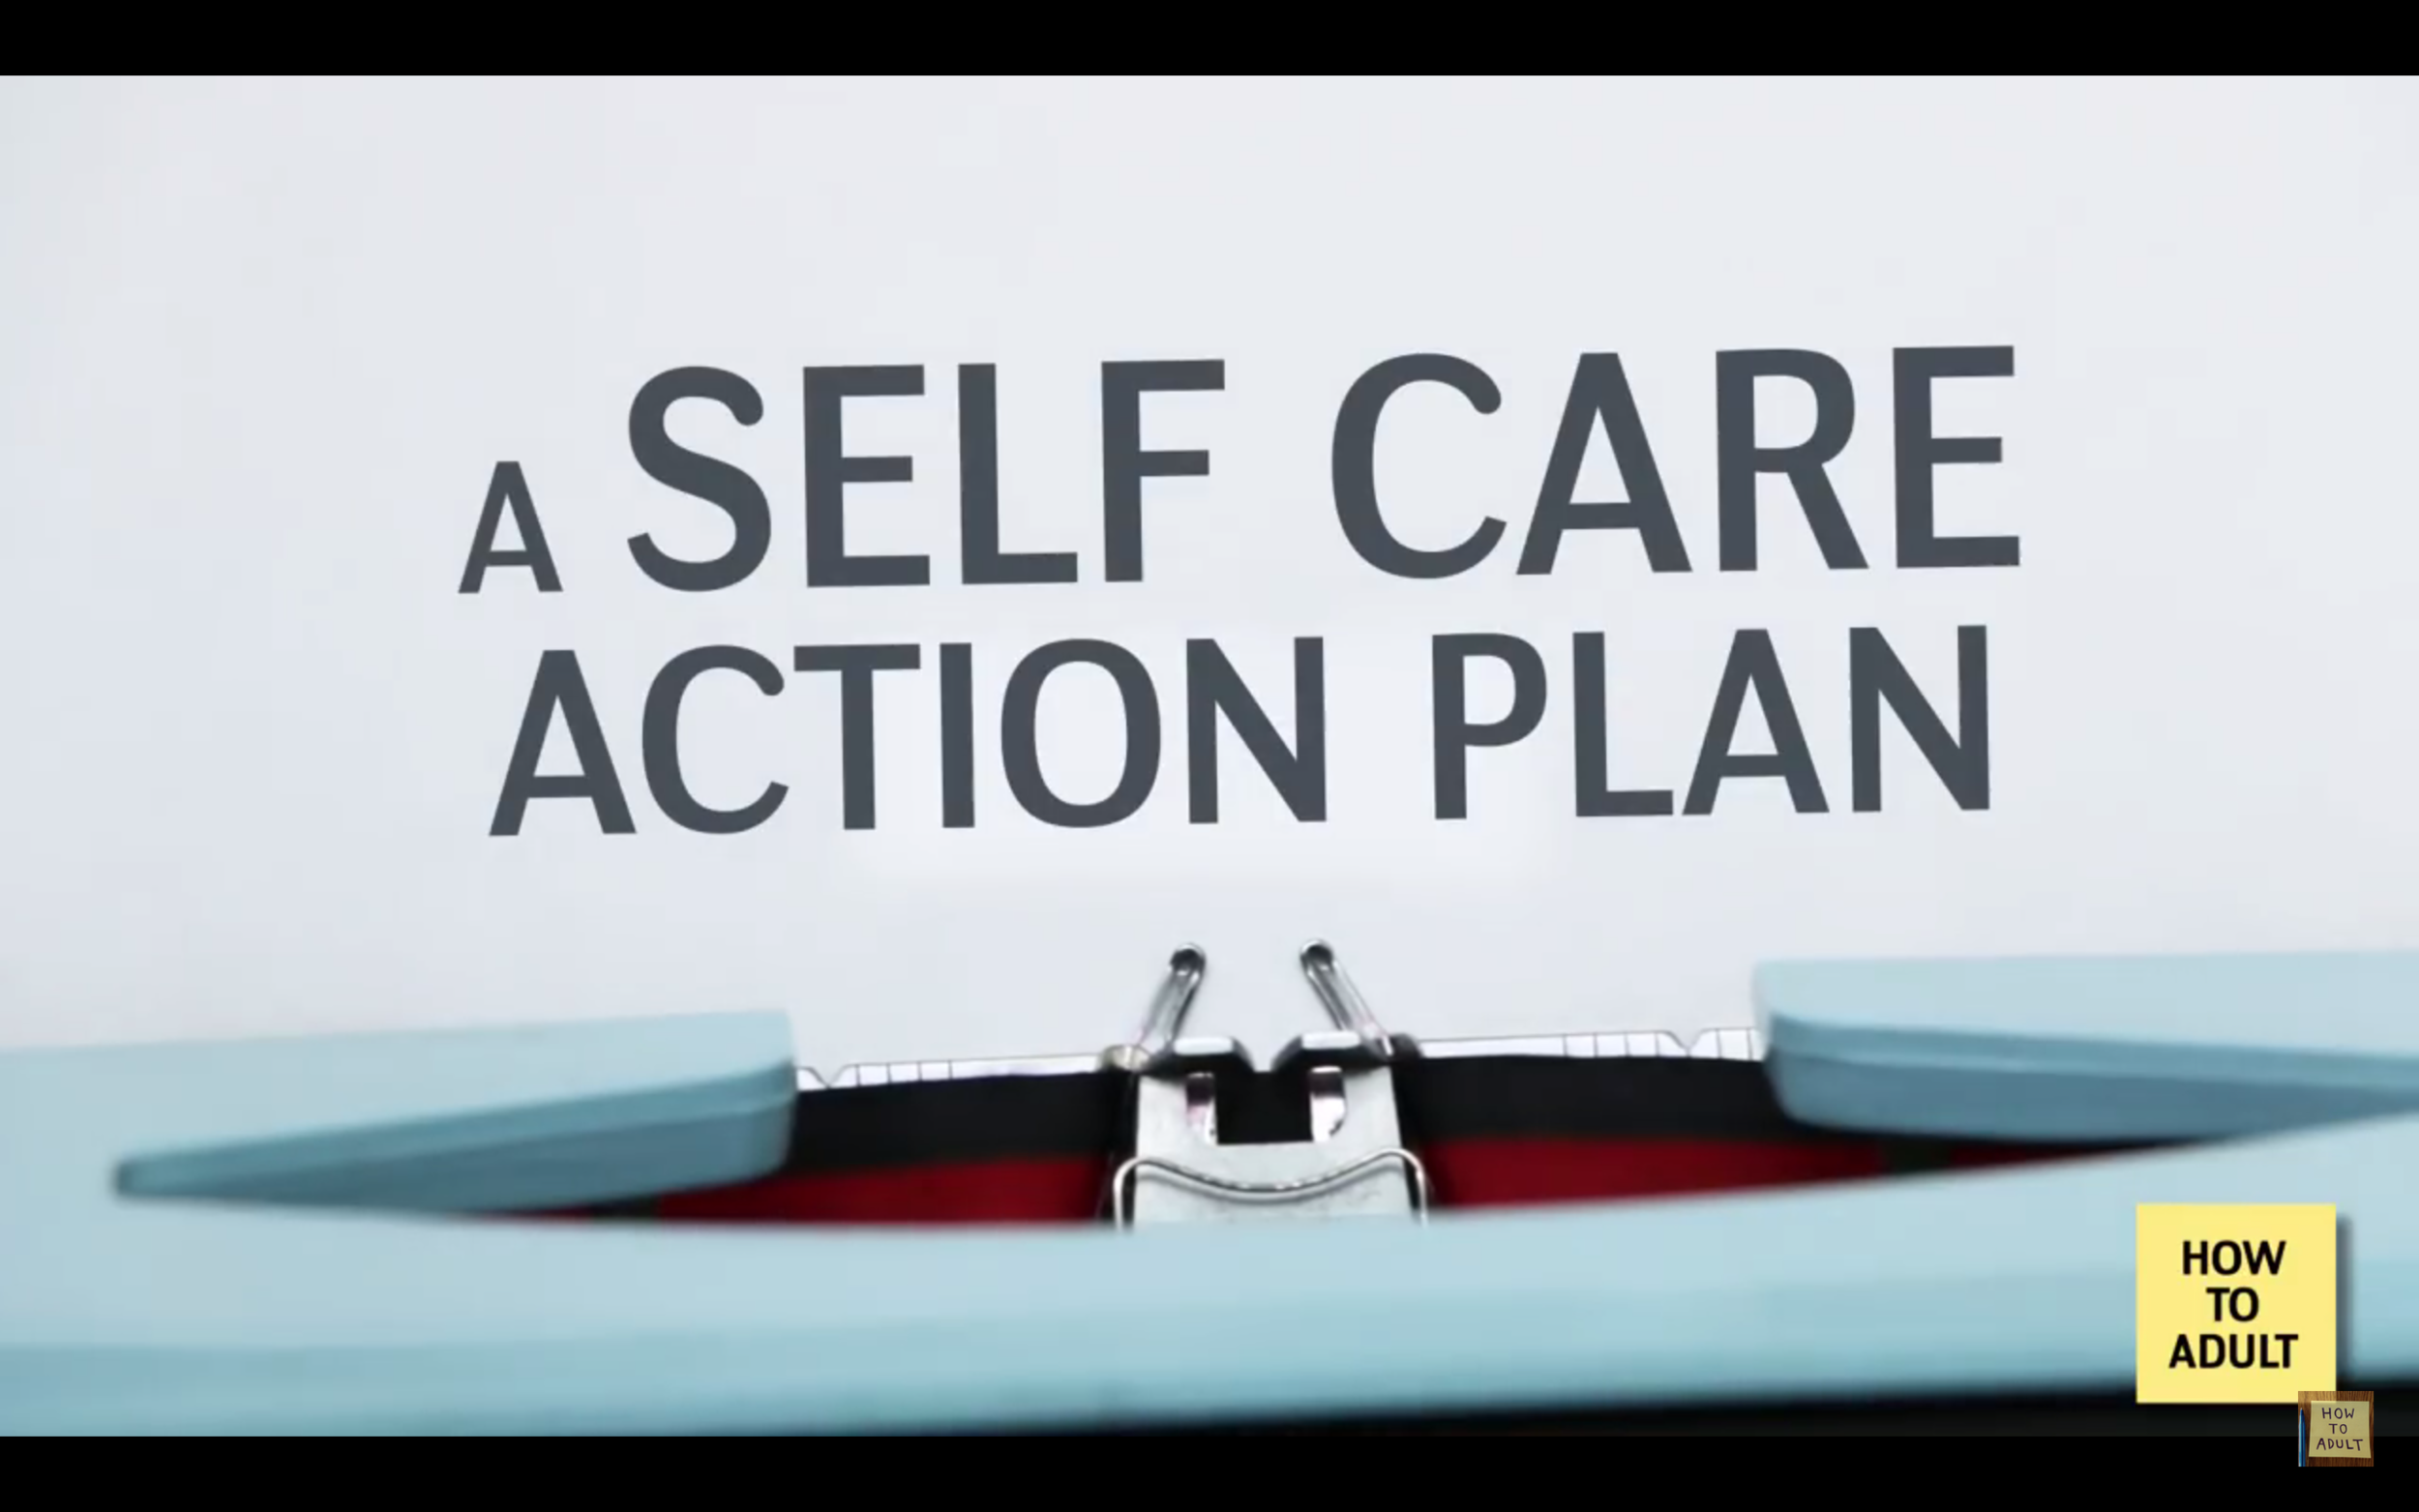 How to Adult: A Self-care Action Plan